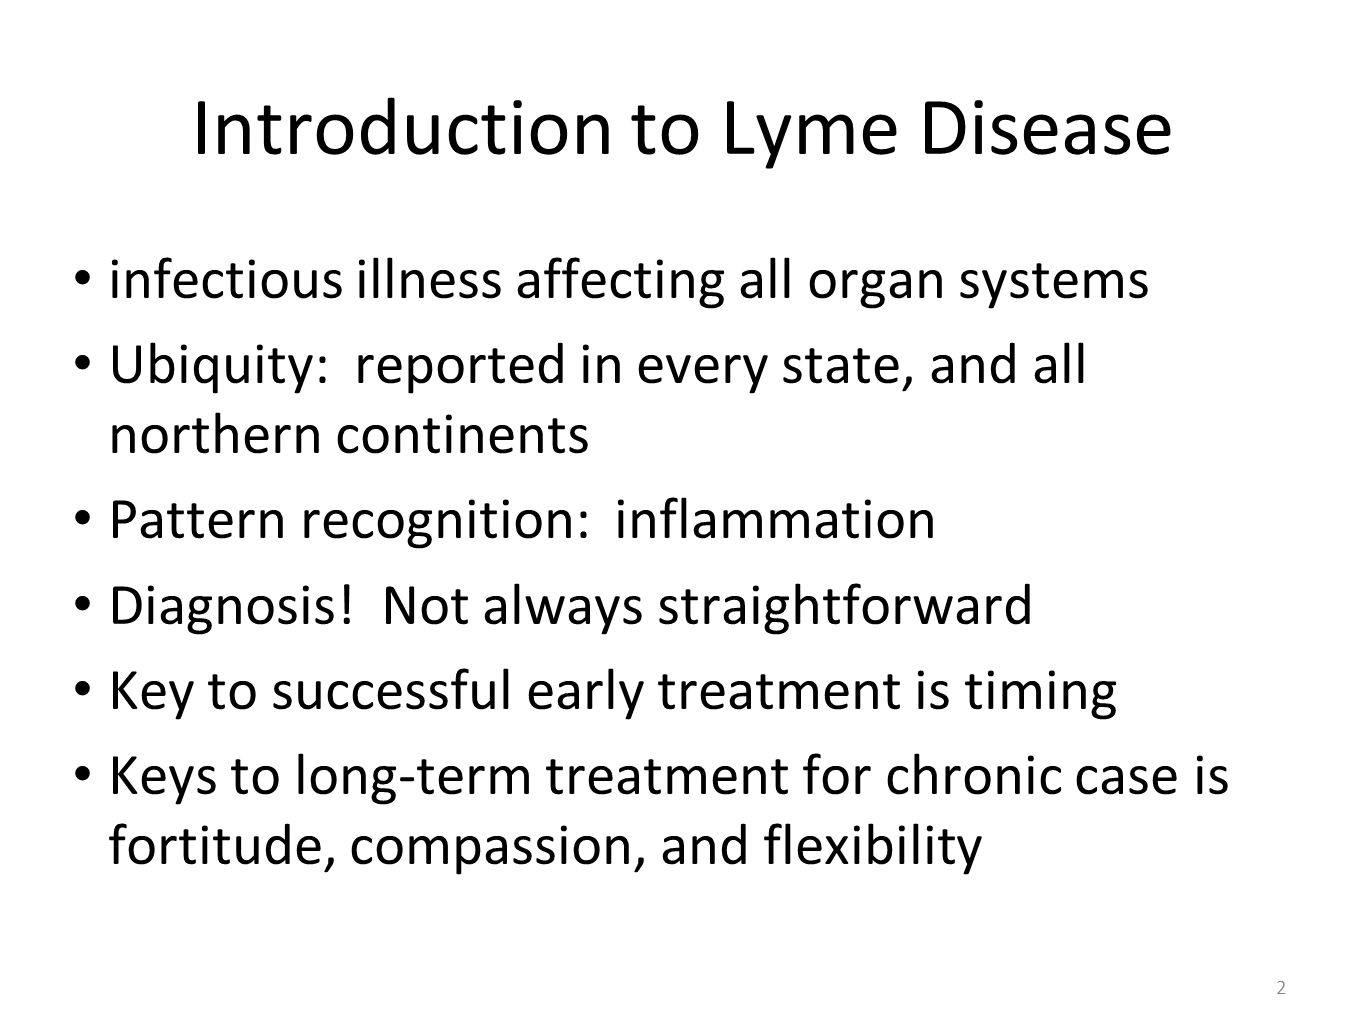 an introduction to the issue of lyme arthitis disease January 2018, volume 141 / issue 1 meetingabstract  introduction: lyme  disease is associated with multiple inflammatory and neurological symptoms  such.